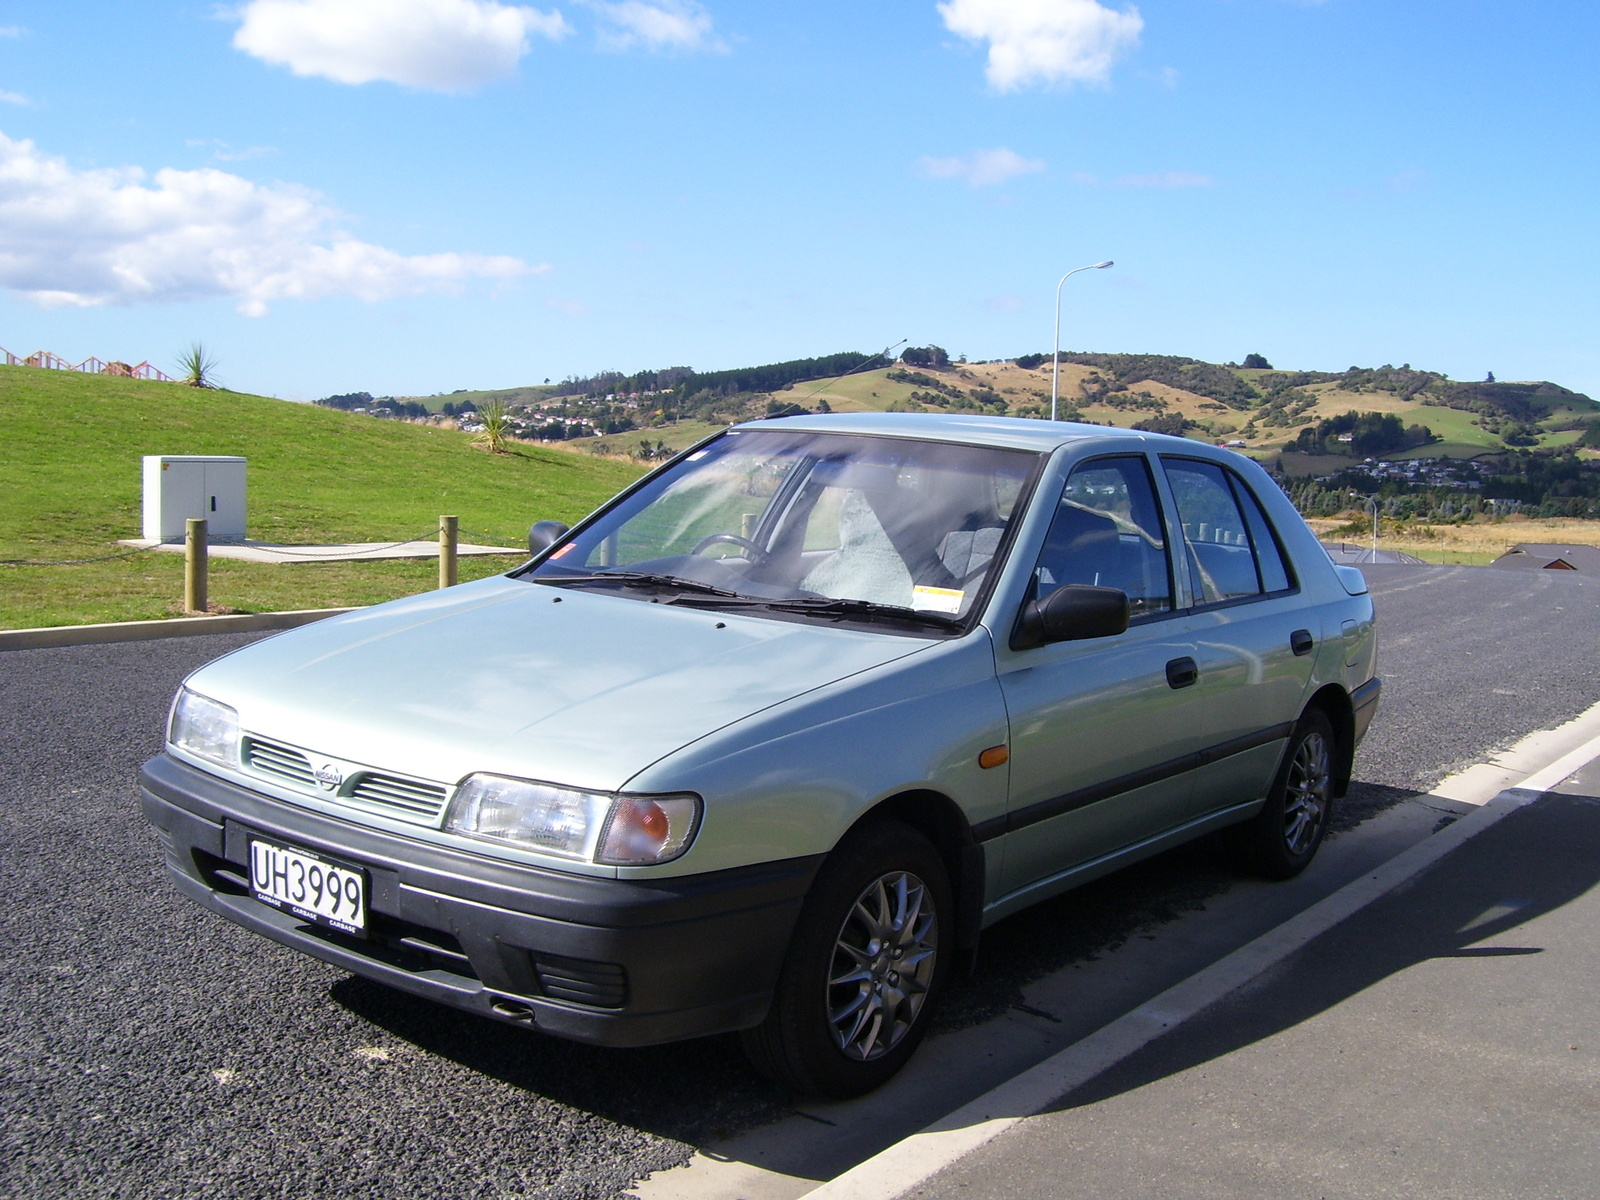 1996 Nissan Sentra Overview Cargurus